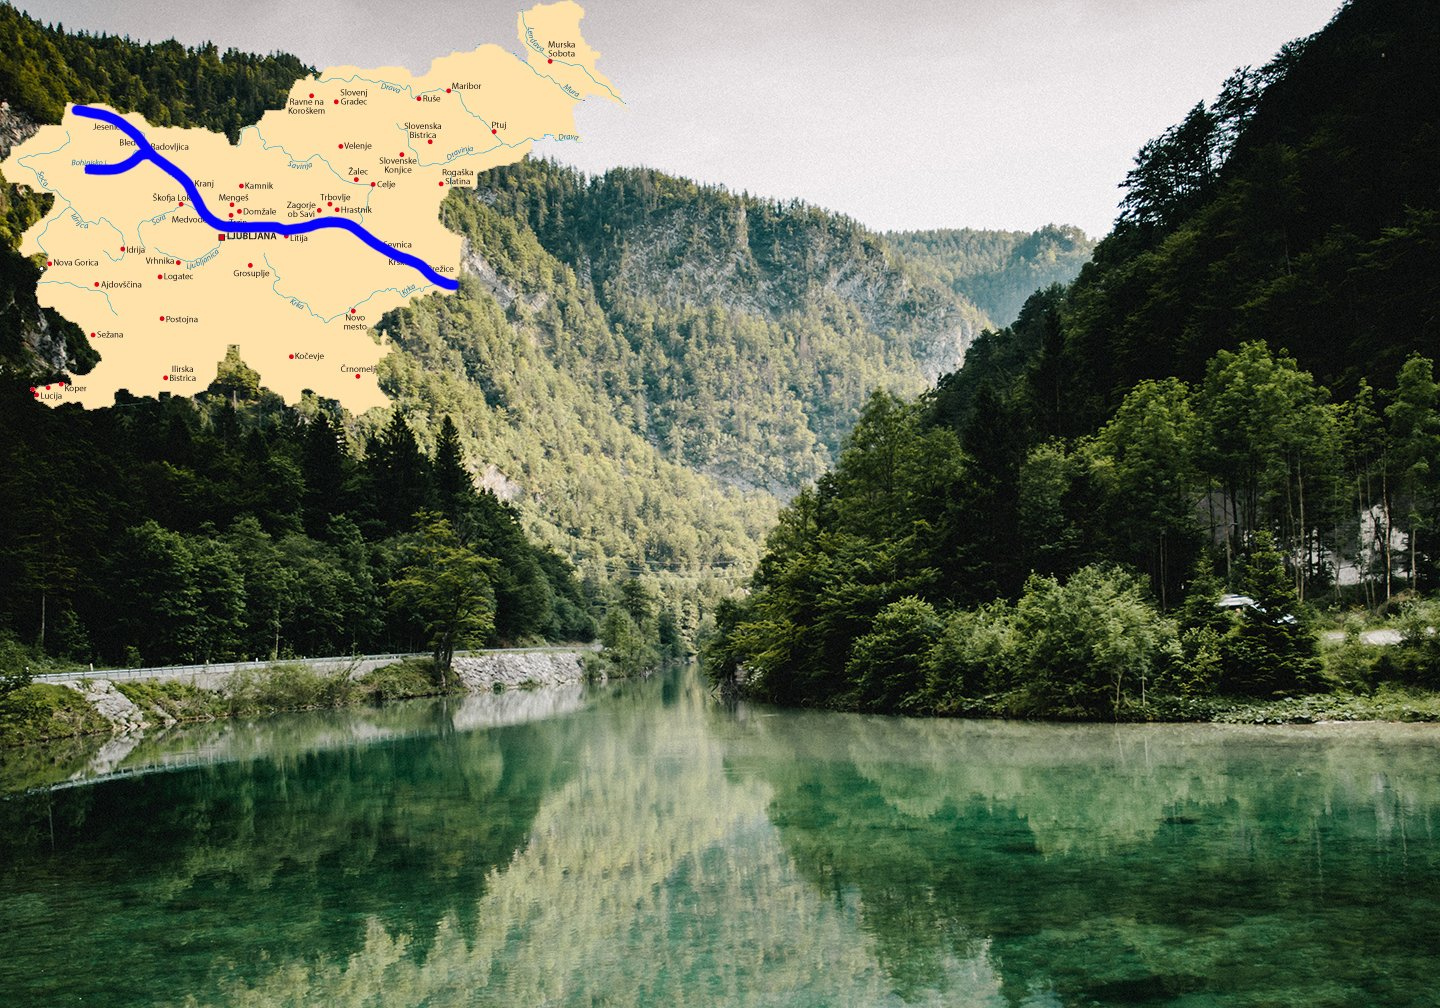 The Sava River, a calm, wide river with mountains either side. There is a map of Slovenia added at the top to show the course of the river through the country.